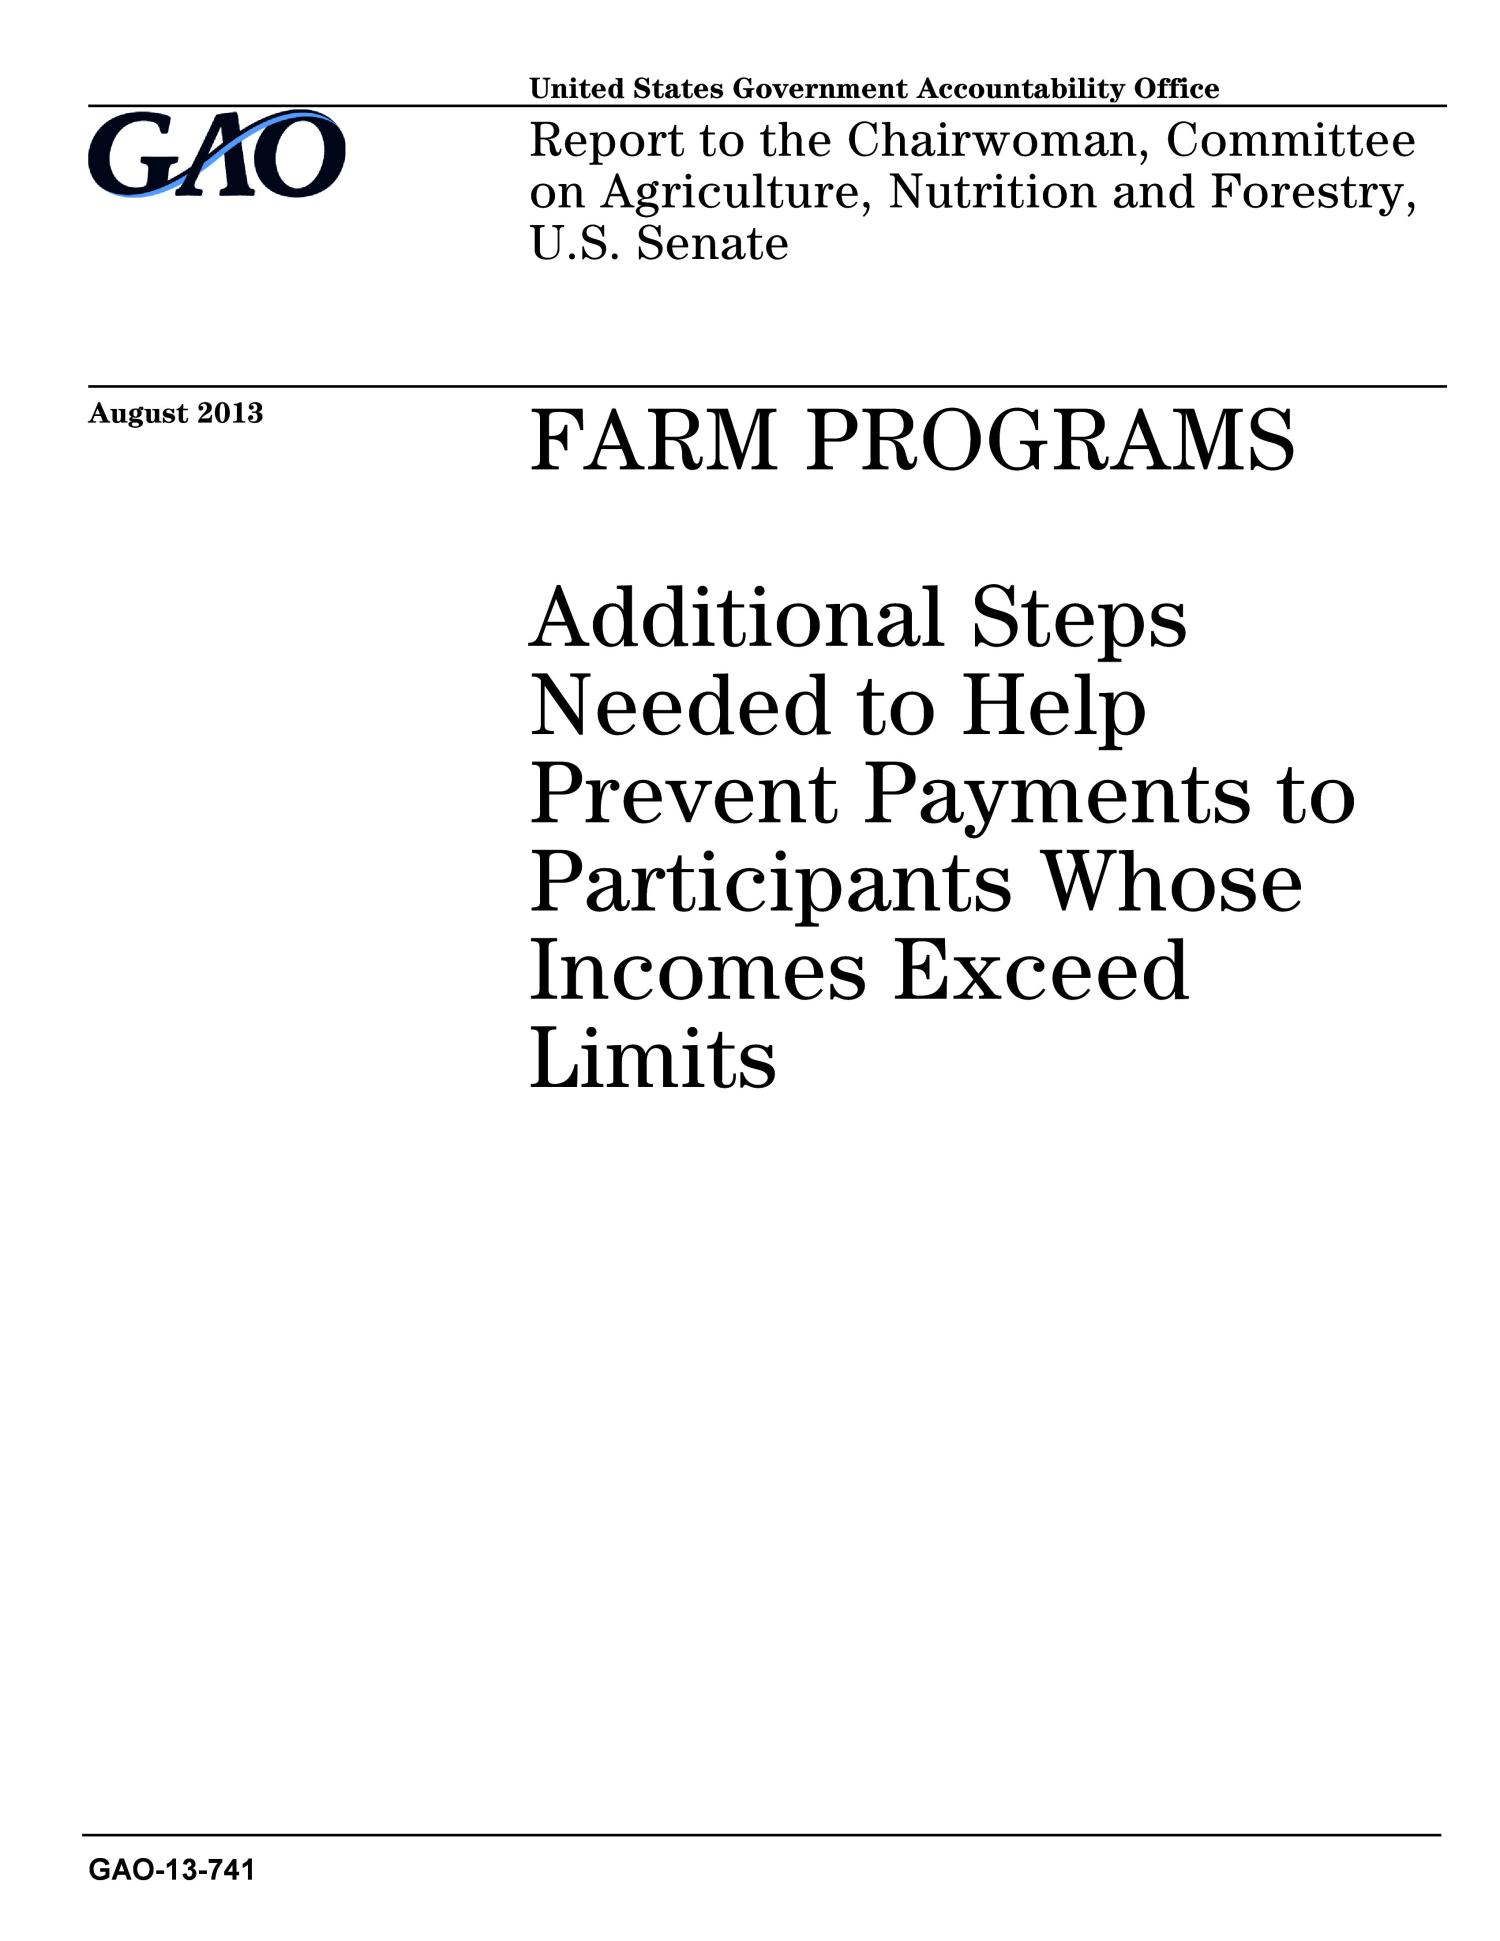 Farm Programs: Additional Steps Needed to Help Prevent Payments to Participants Whose Incomes Exceed Limits                                                                                                      [Sequence #]: 1 of 61